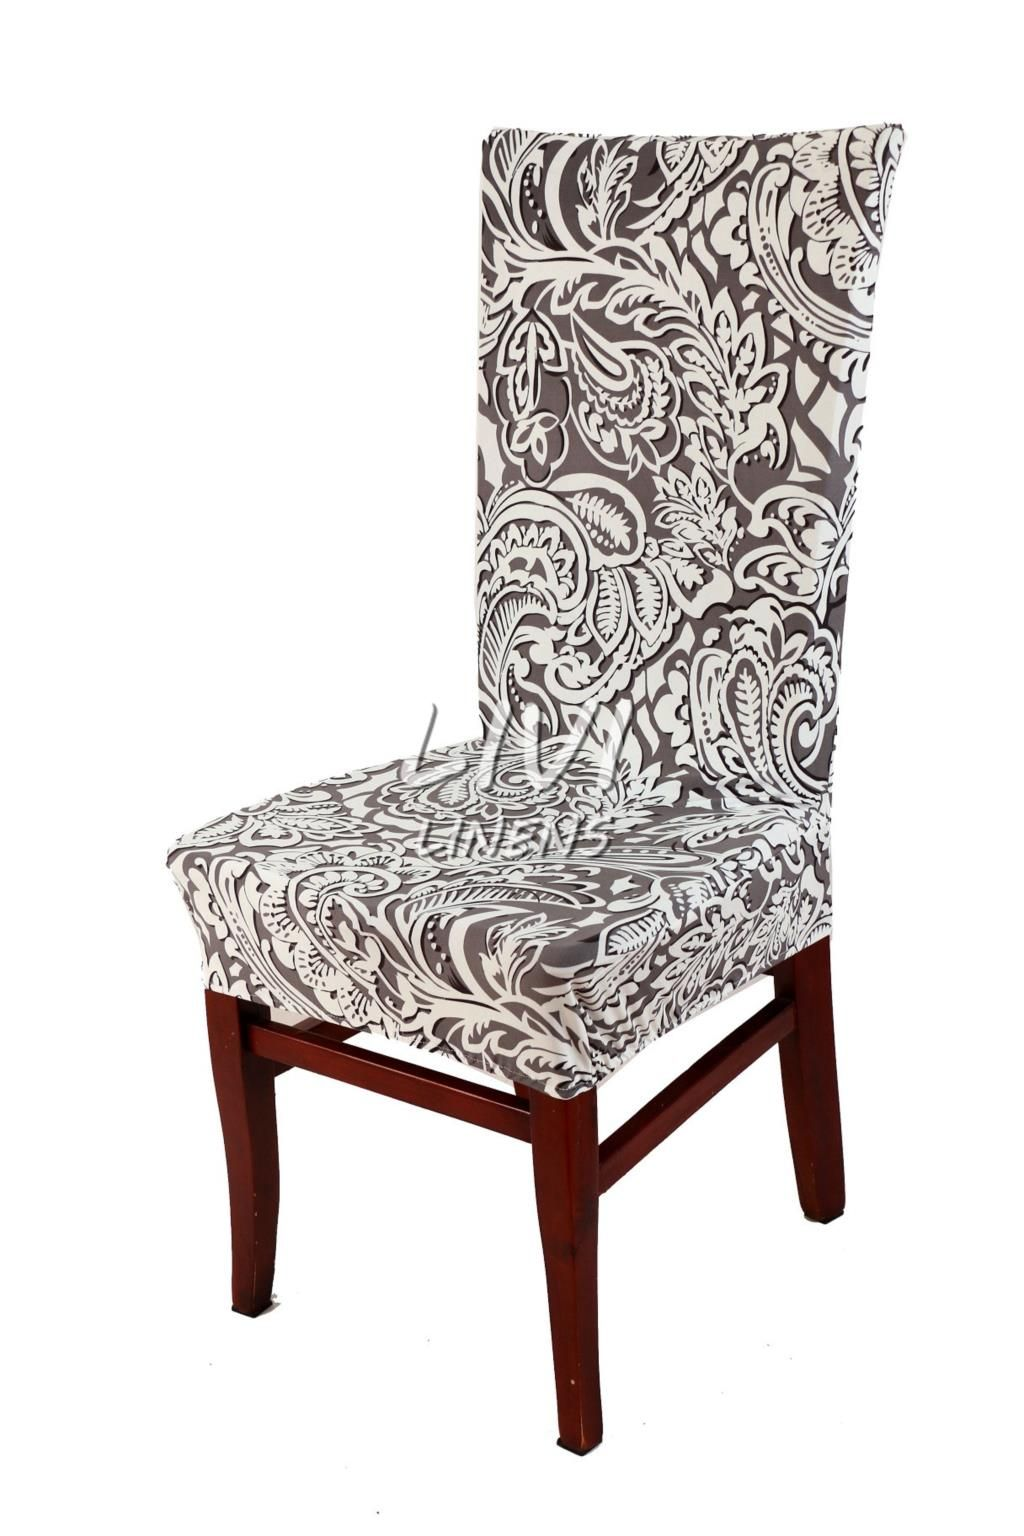 That S A Beautiful Chair Cover In Gray Paisley Fabric With Images